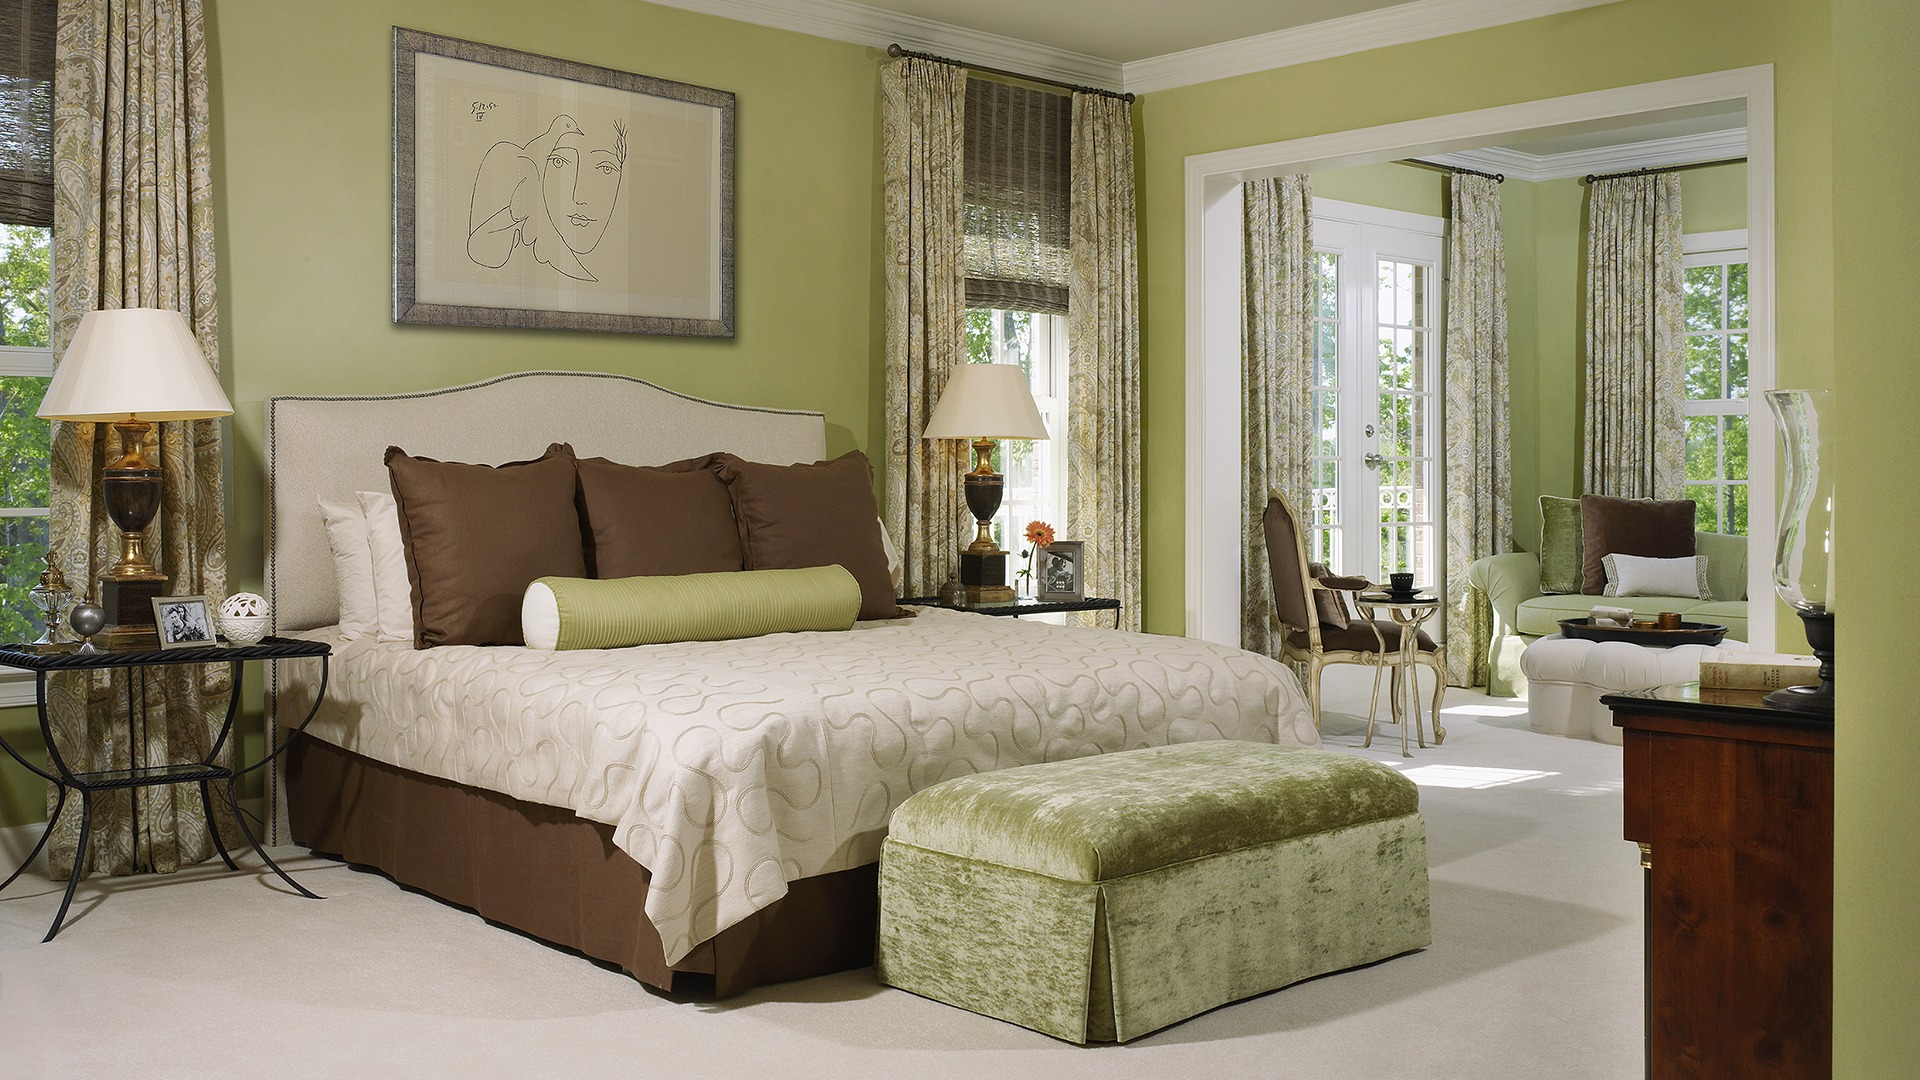 The Owner's Bedroom in our Ashcroft model in Brambleton. Some options shown.